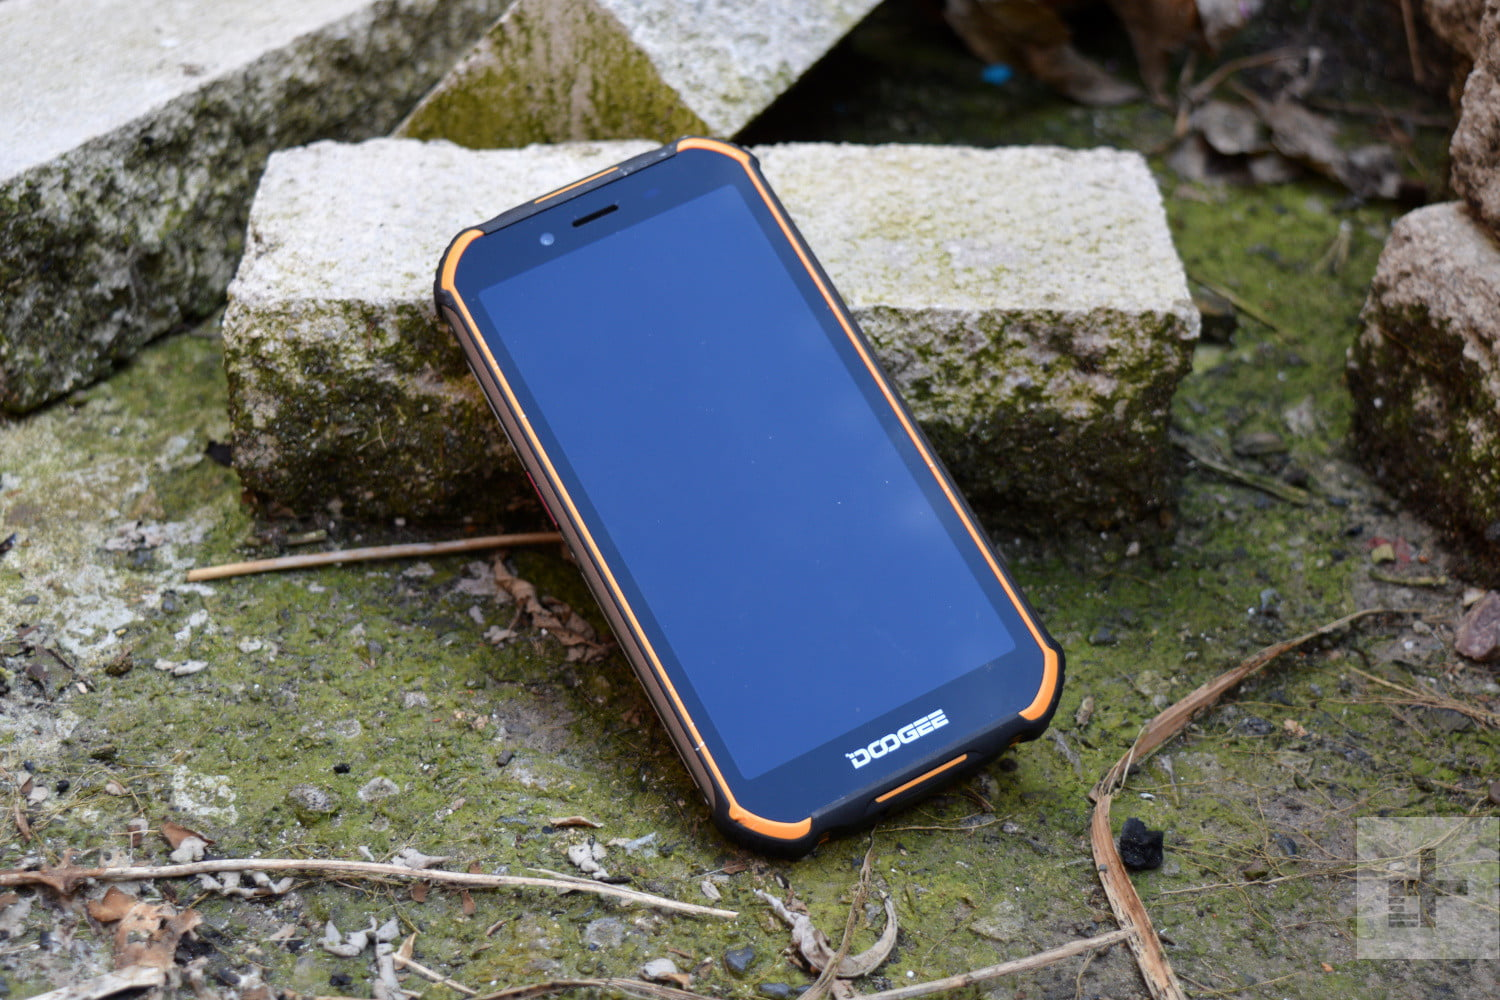 Doogee S40 Product Impressions: A Super-Tough Phone For Just